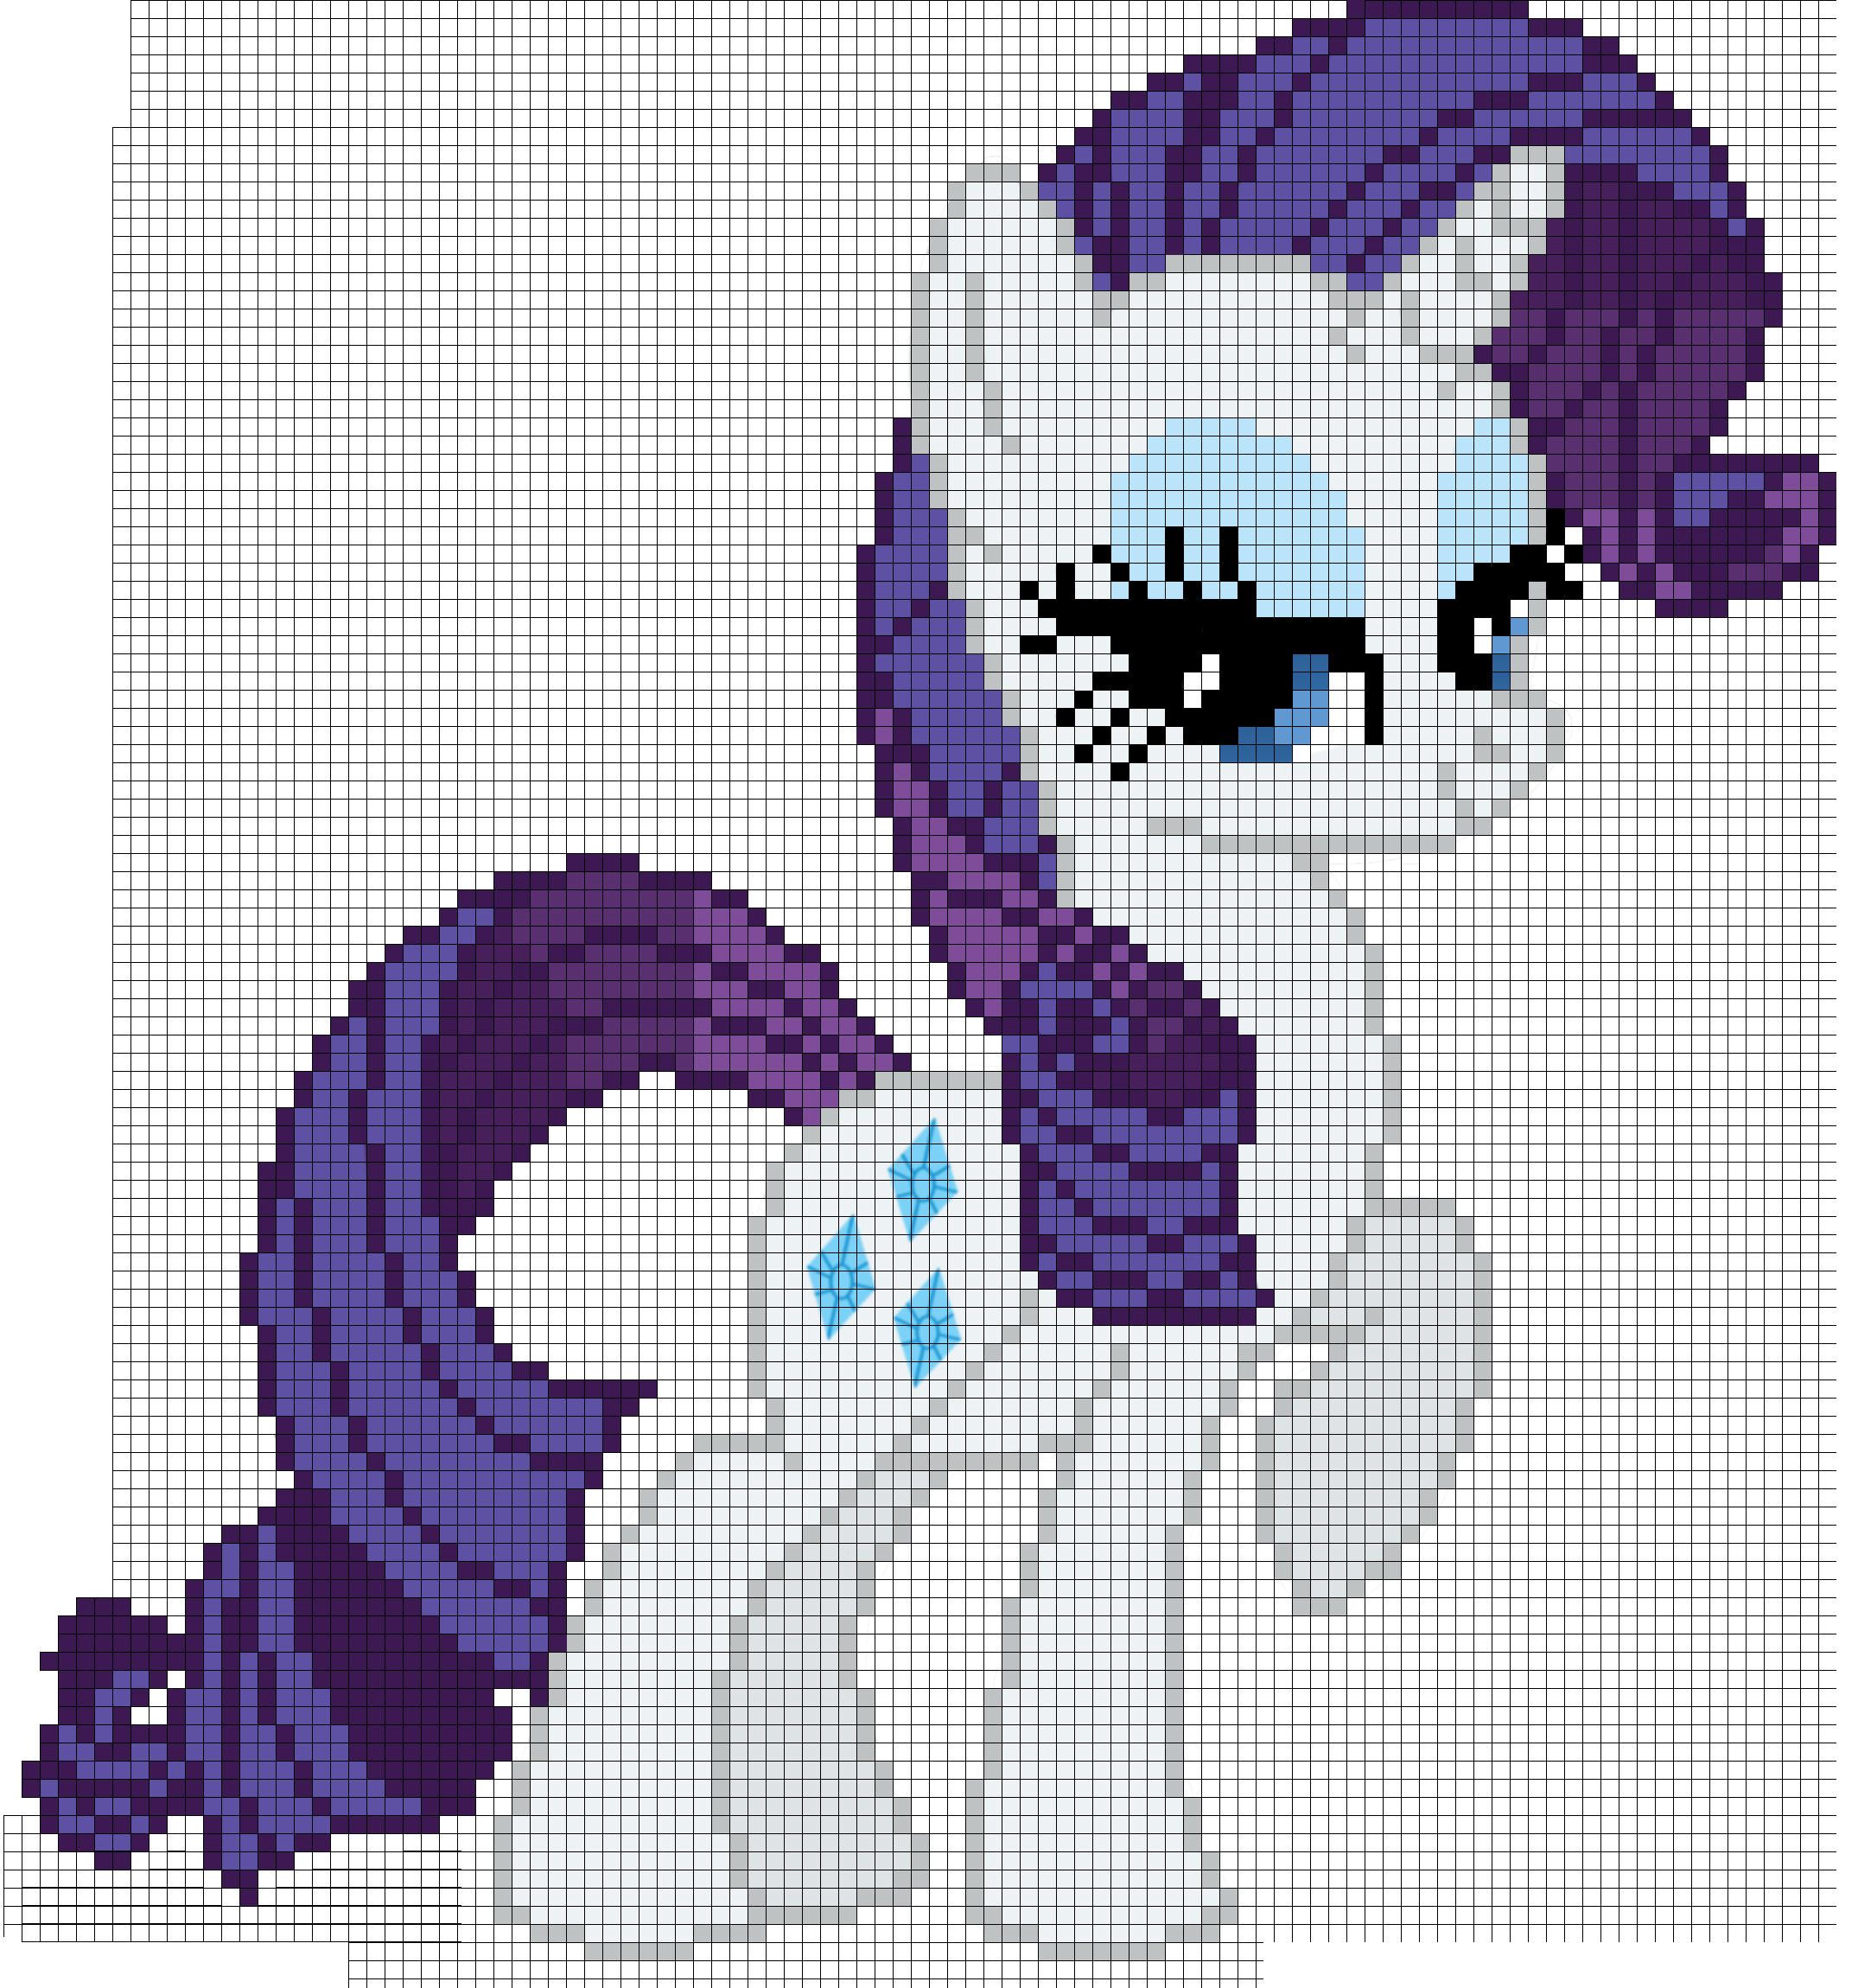 My little pony rarity. Stitch clipart cross stitch